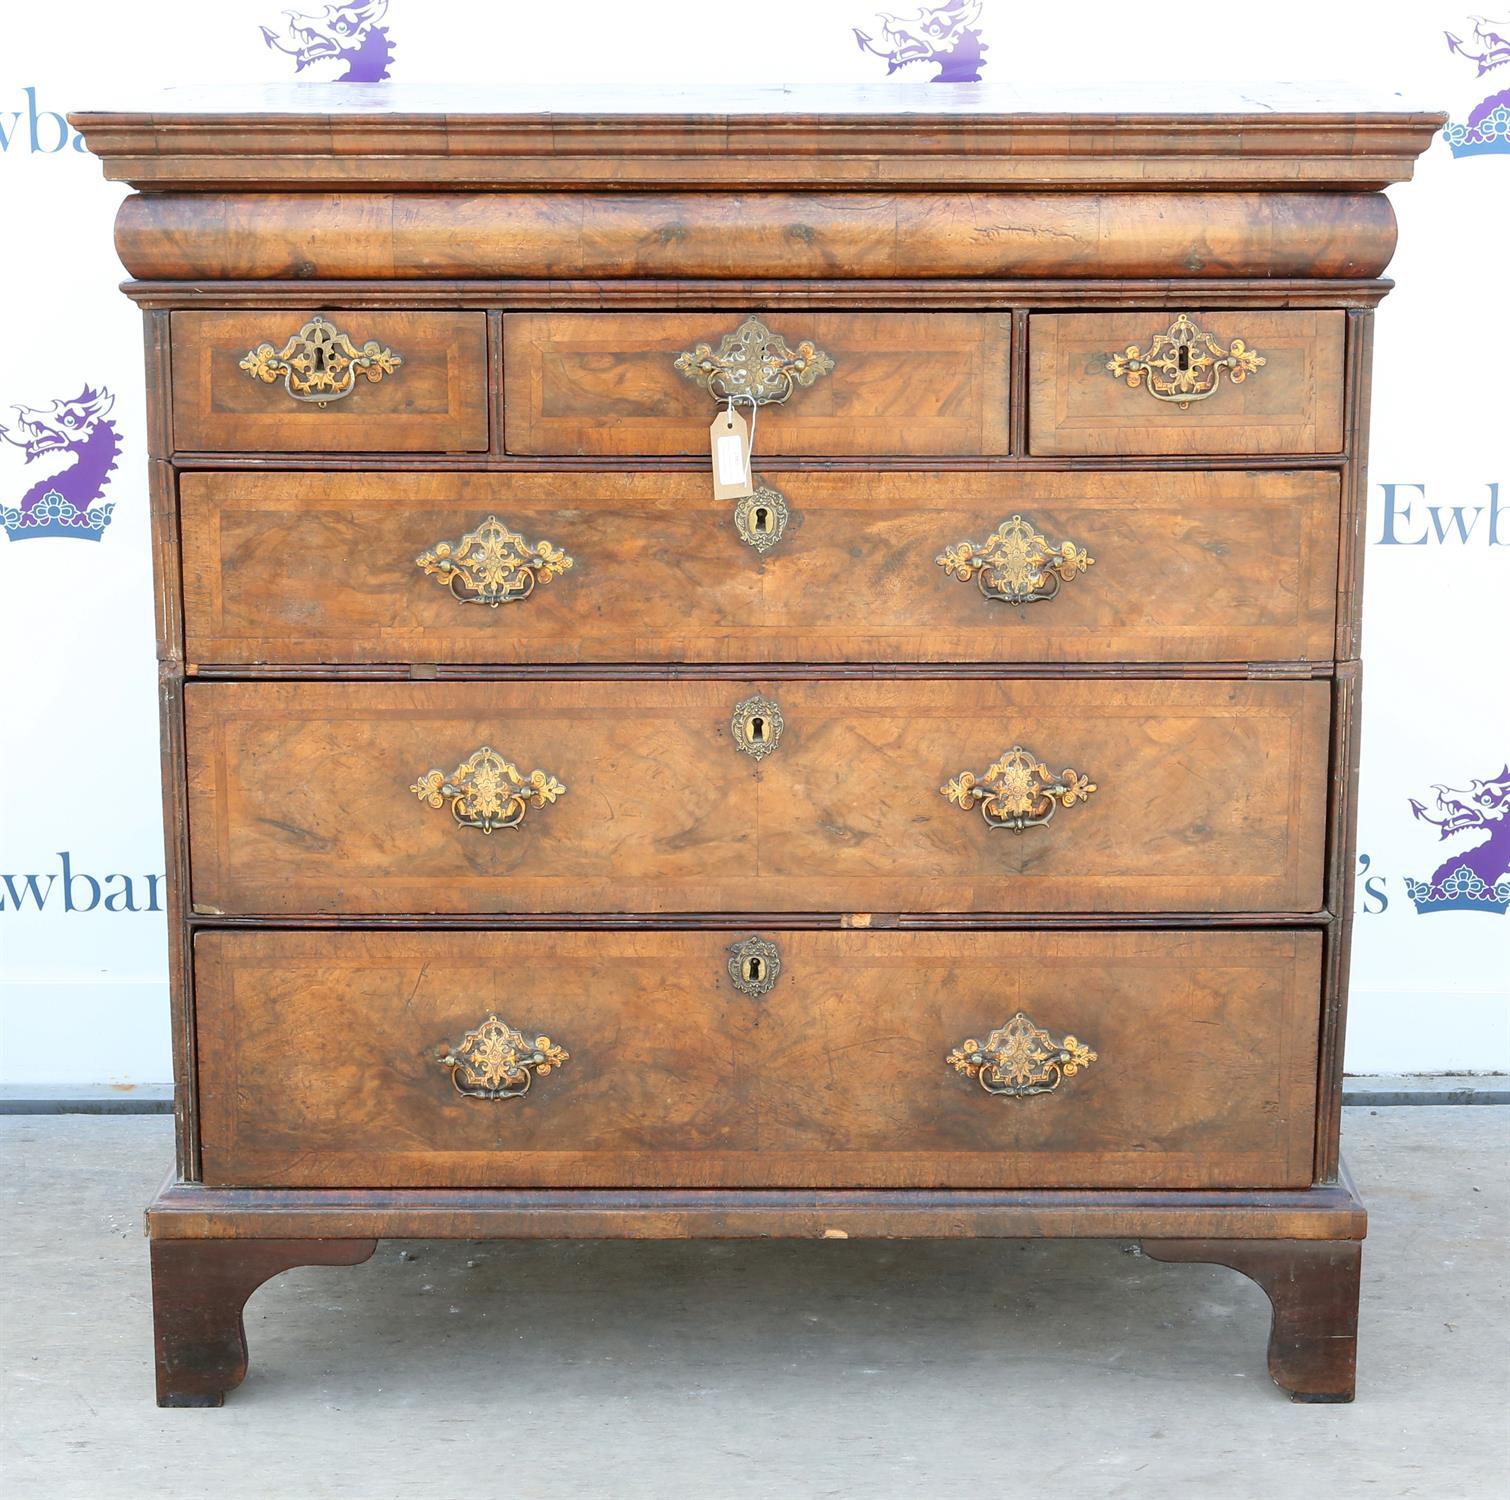 19th century mahogany chest of drawers, with single frieze drawer above three short over three long